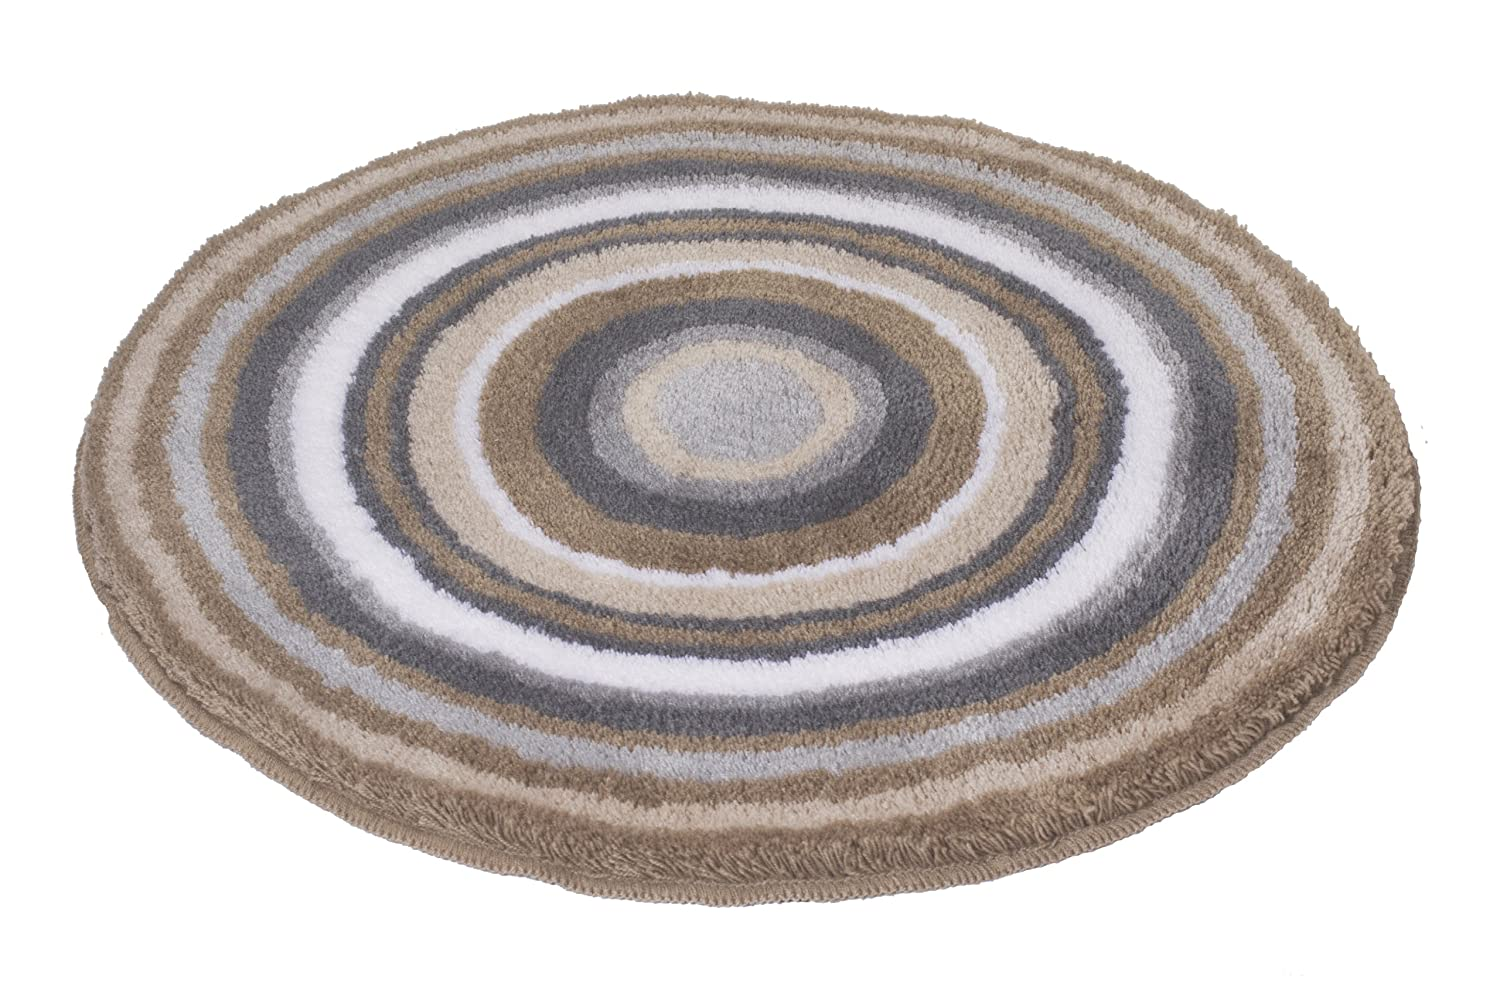 Meusch Mandala Round Bath Mat Taupe 60 Cm Amazon Co Uk Kitchen